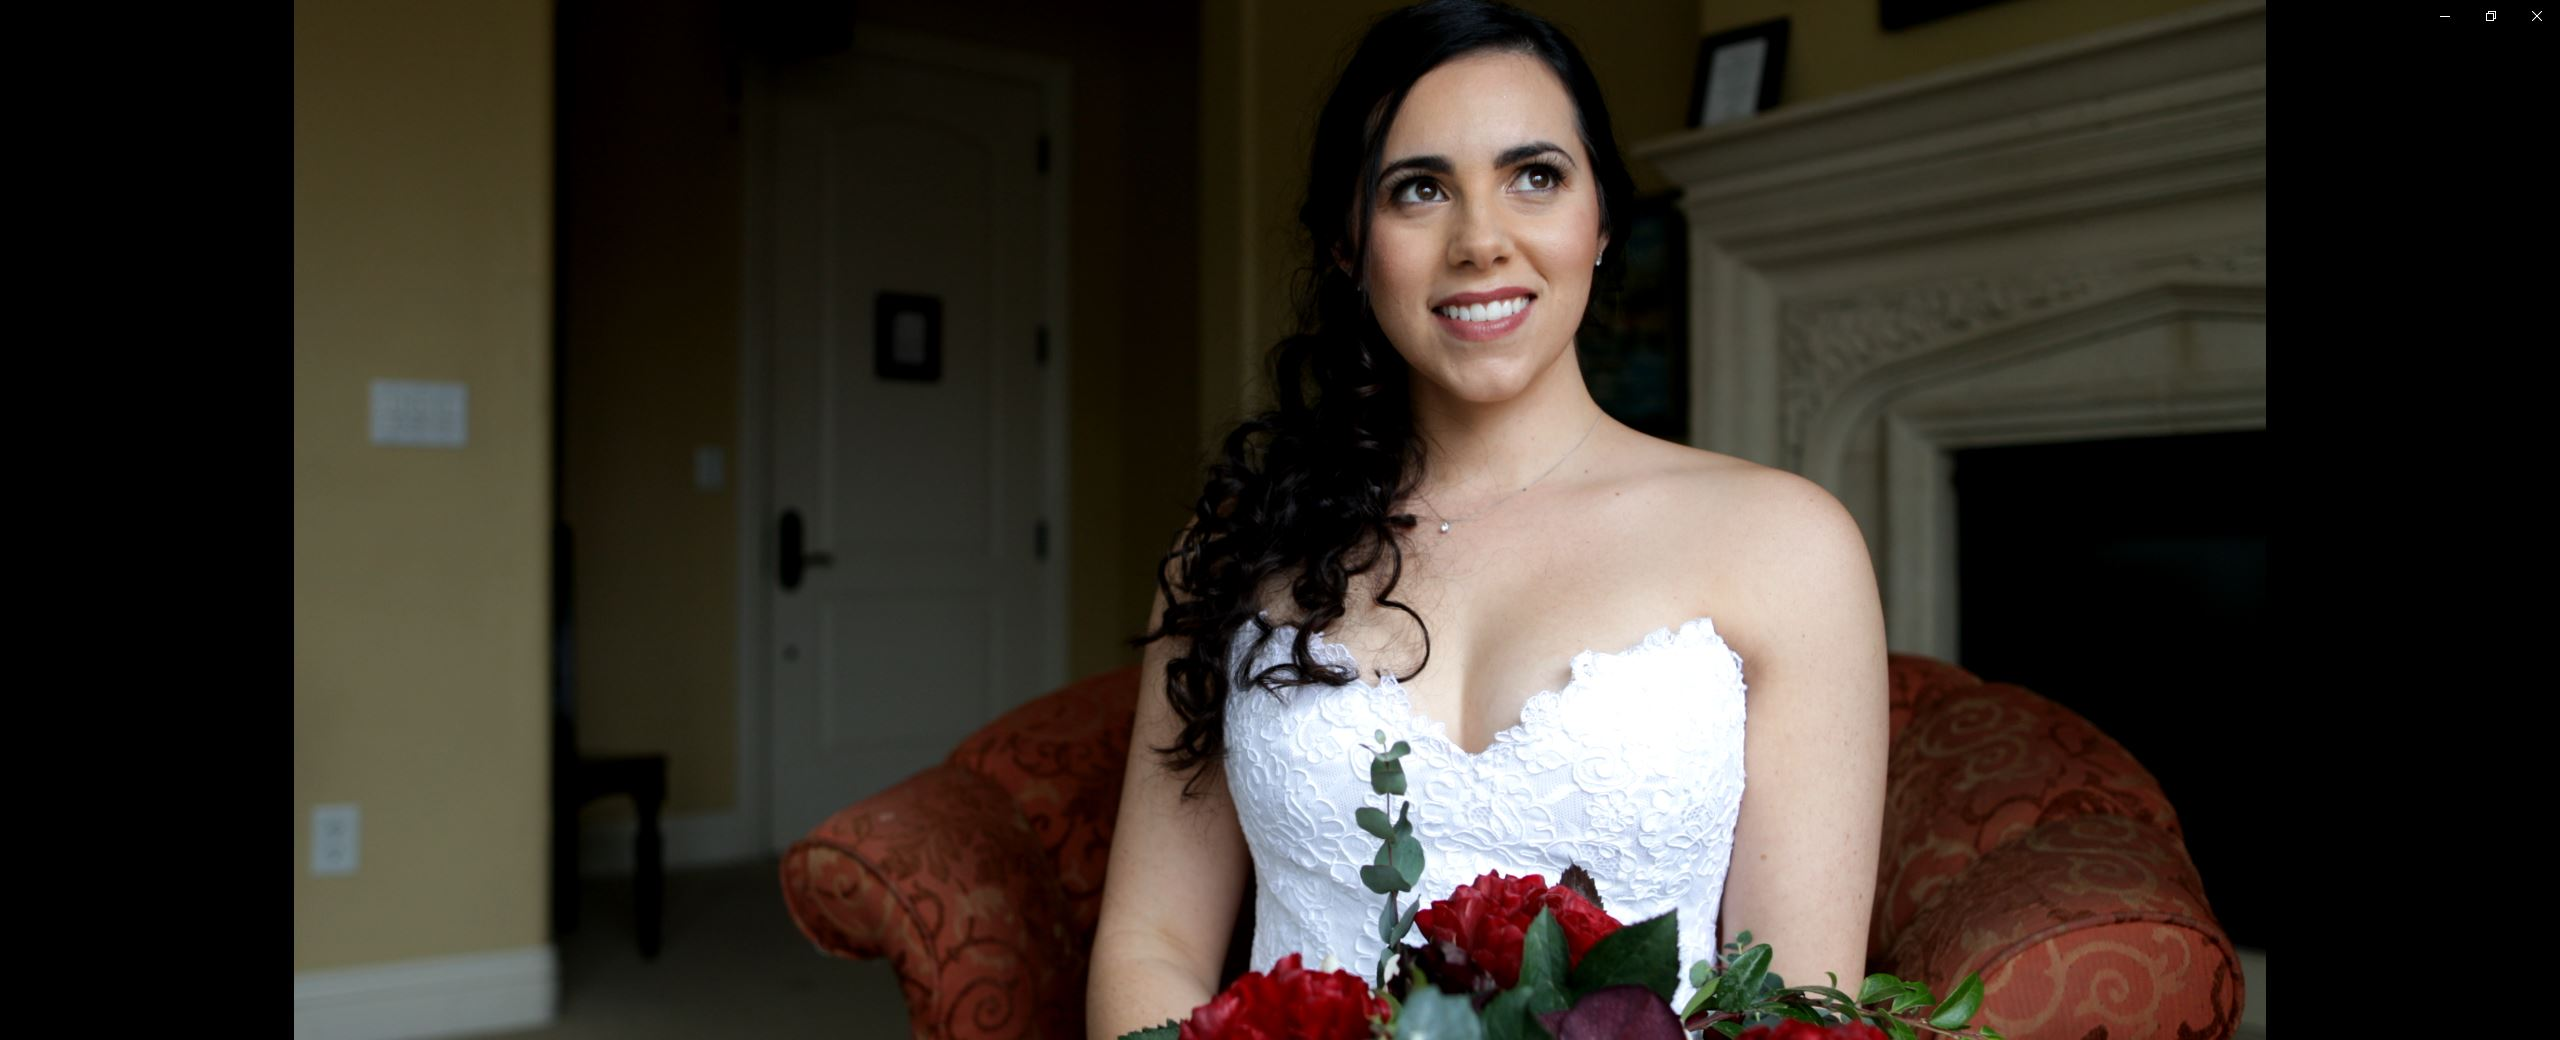 Bride sitting in a chair in hotel room smiling with flowers in Sacramento, ca